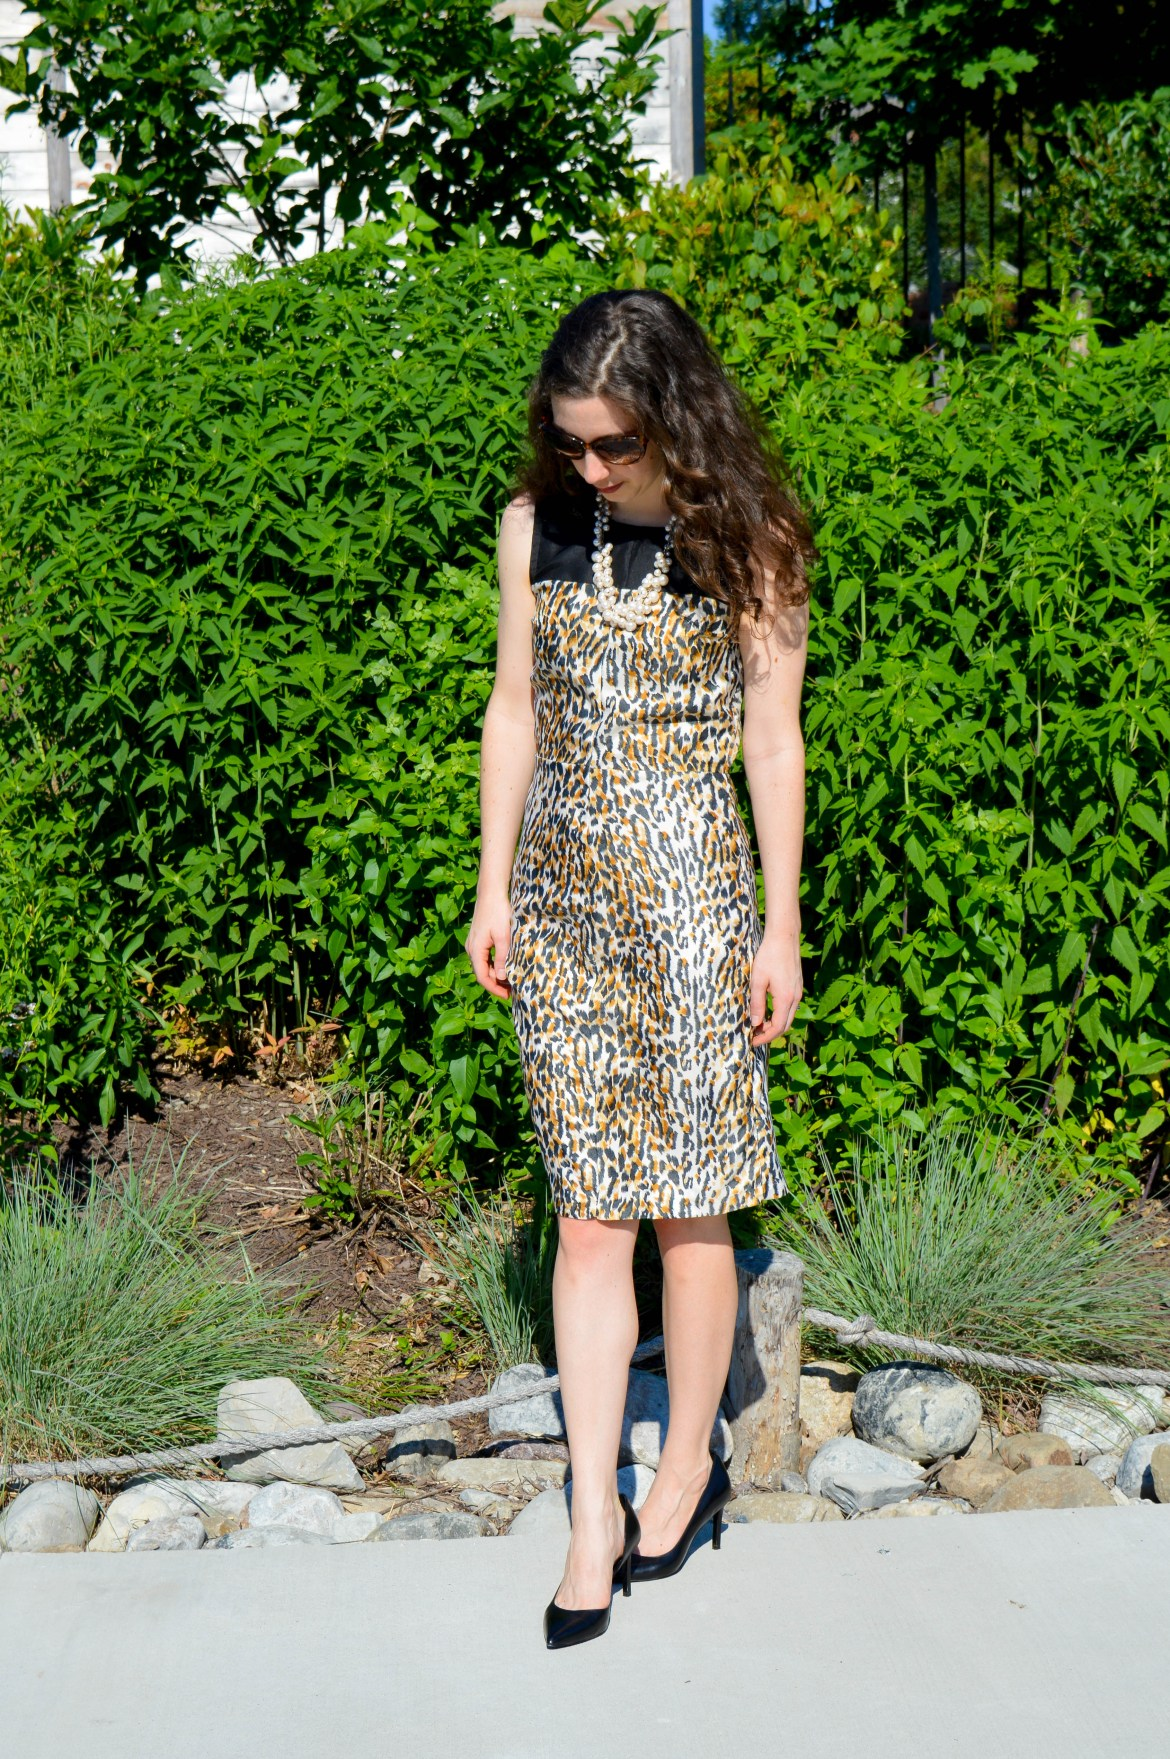 The Leopard Print Dress | Summer work outfit